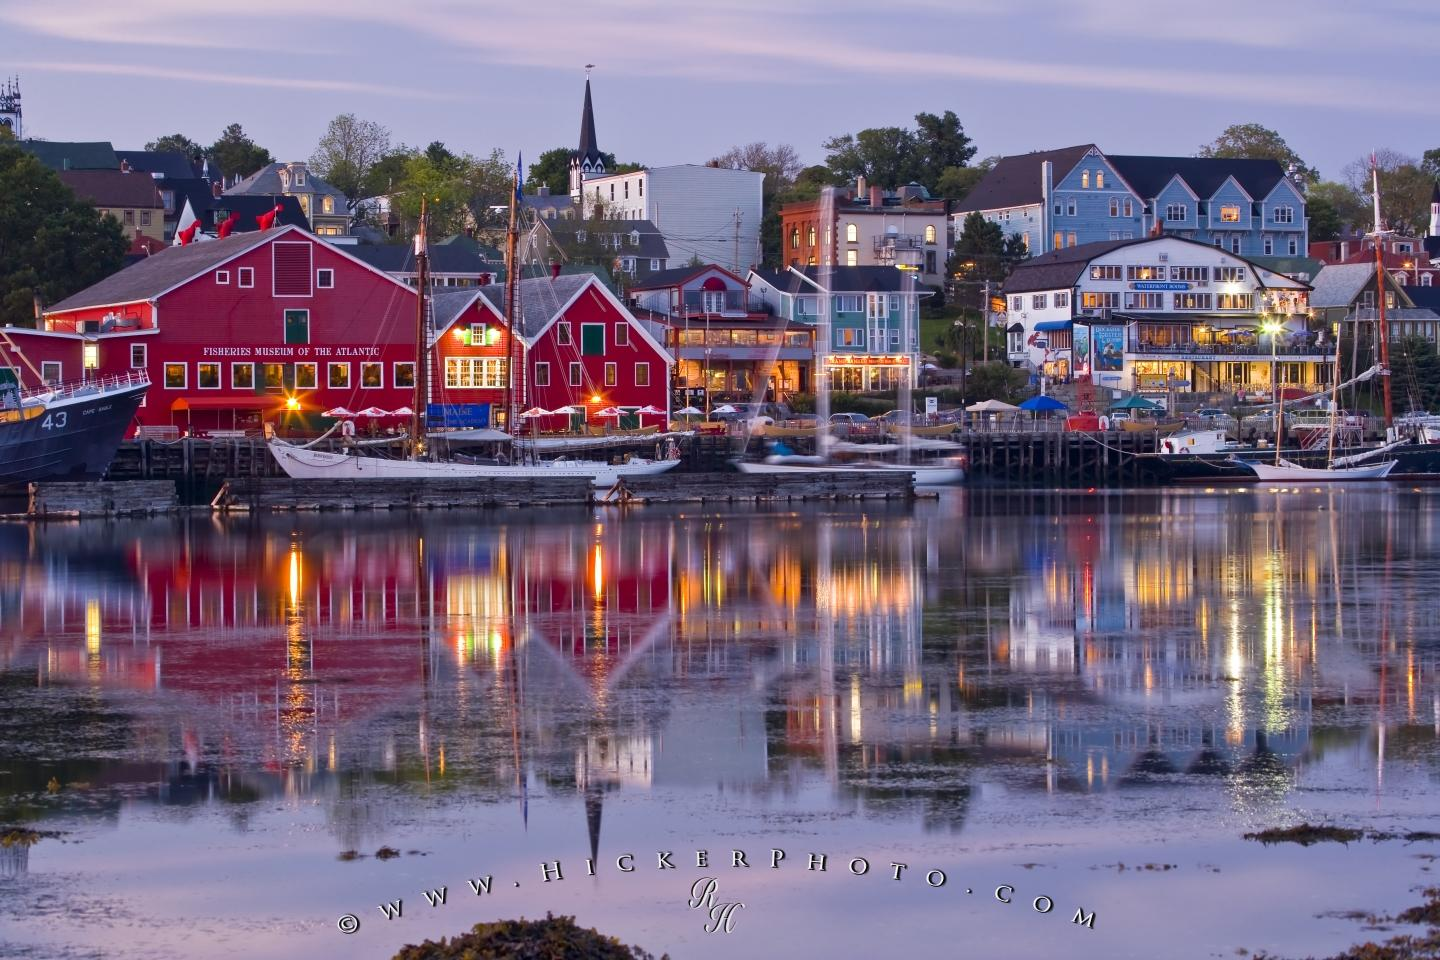 free wallpaper background: historic lunenburg nova scotia canada